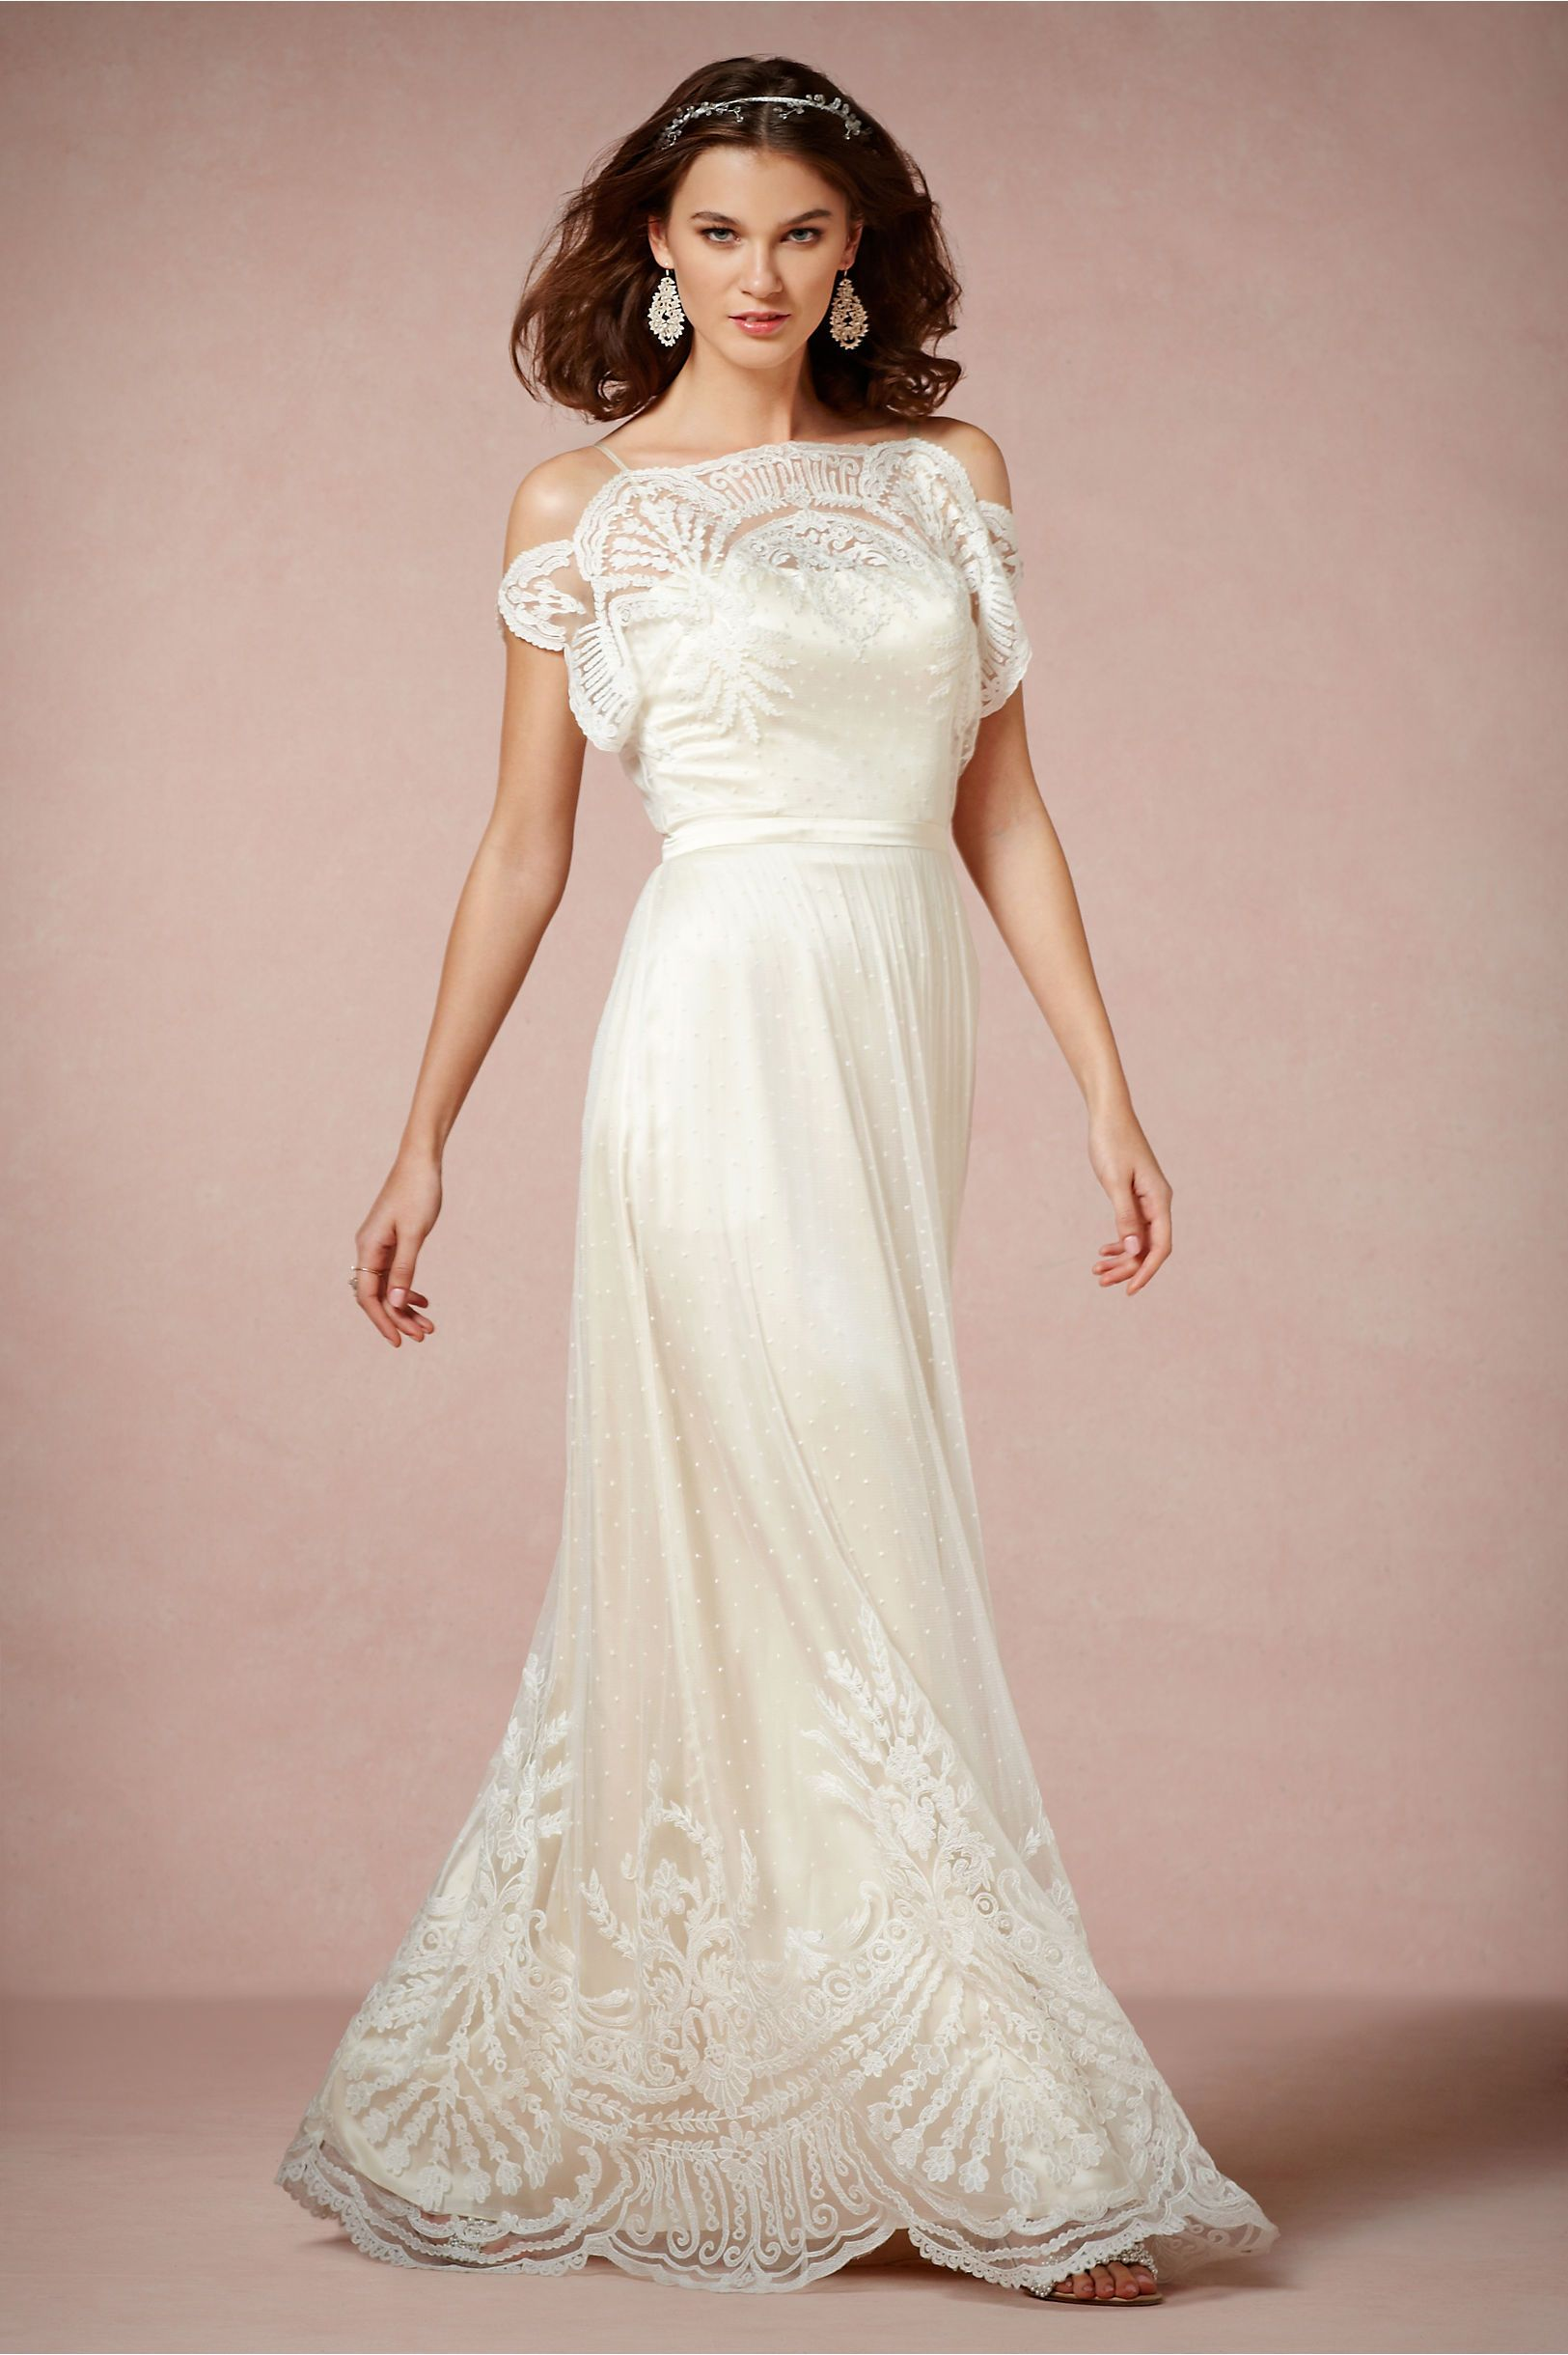 Omelia Gown in Bride Wedding Dresses at BHLDN | Kate\'s Wedding ...